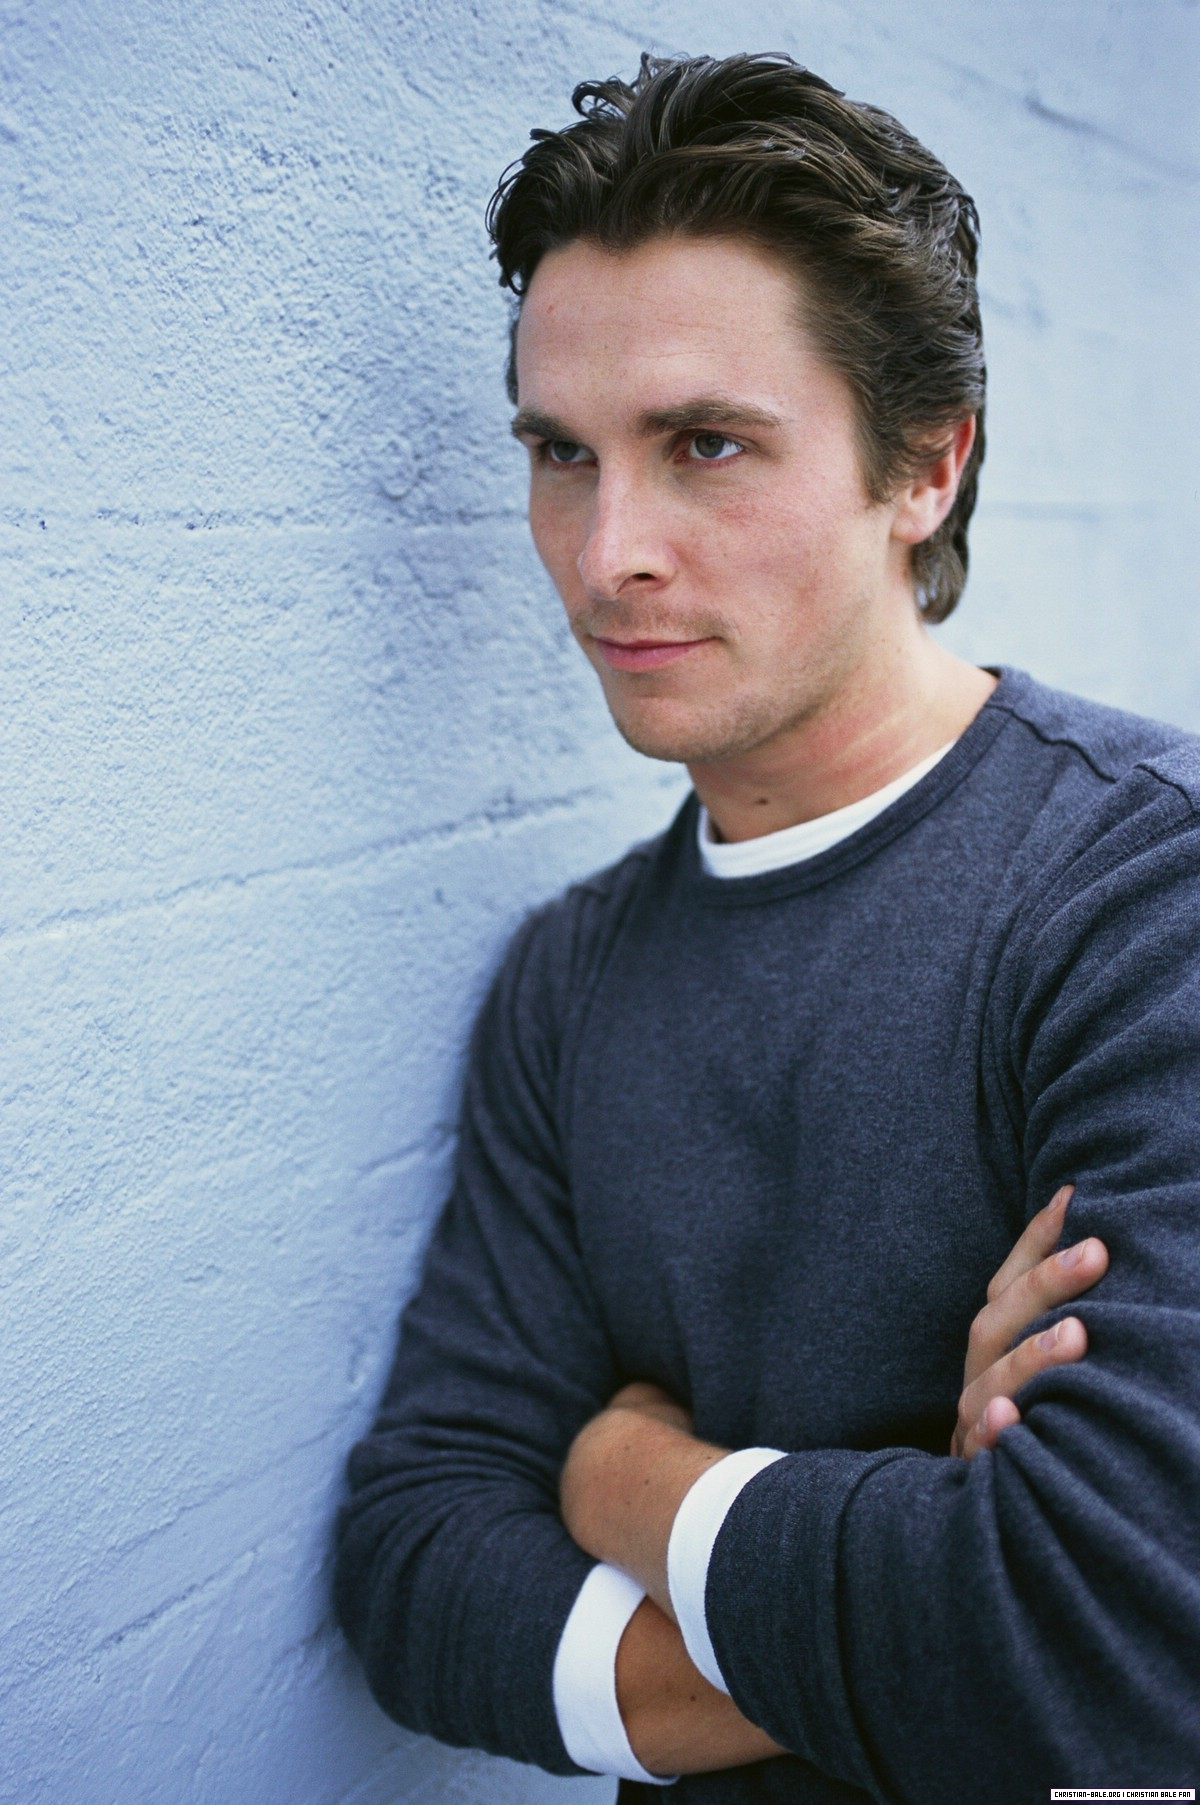 Hottest Actors images Christian Bale HD wallpaper and background ...: www.fanpop.com/clubs/hottest-actors/images/2494985/title/christian...